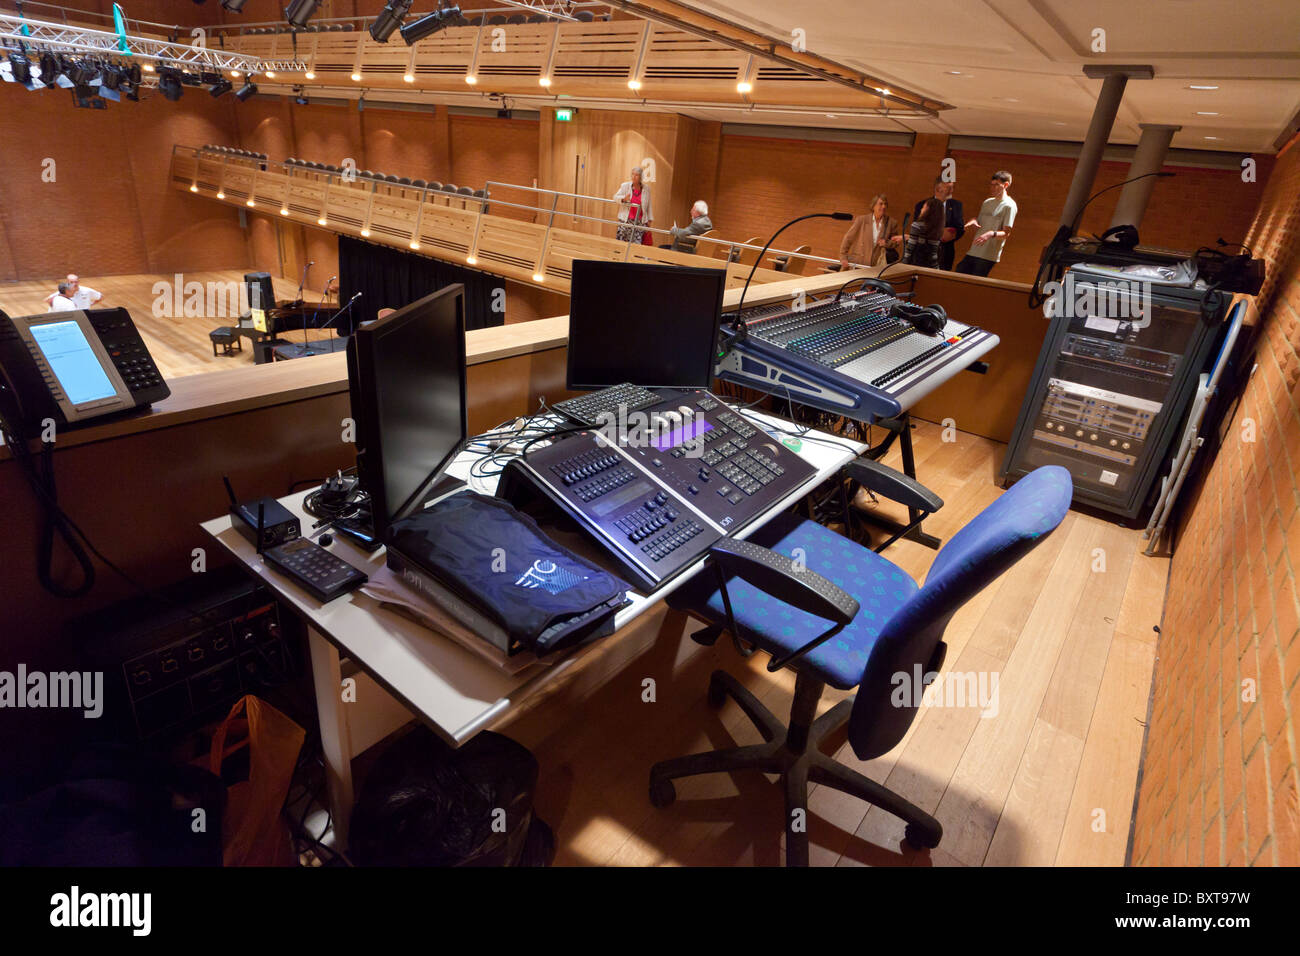 lighting controller and audio mixer desk at  The Apex, Bury St Edmunds, Suffolk, UK - Stock Image